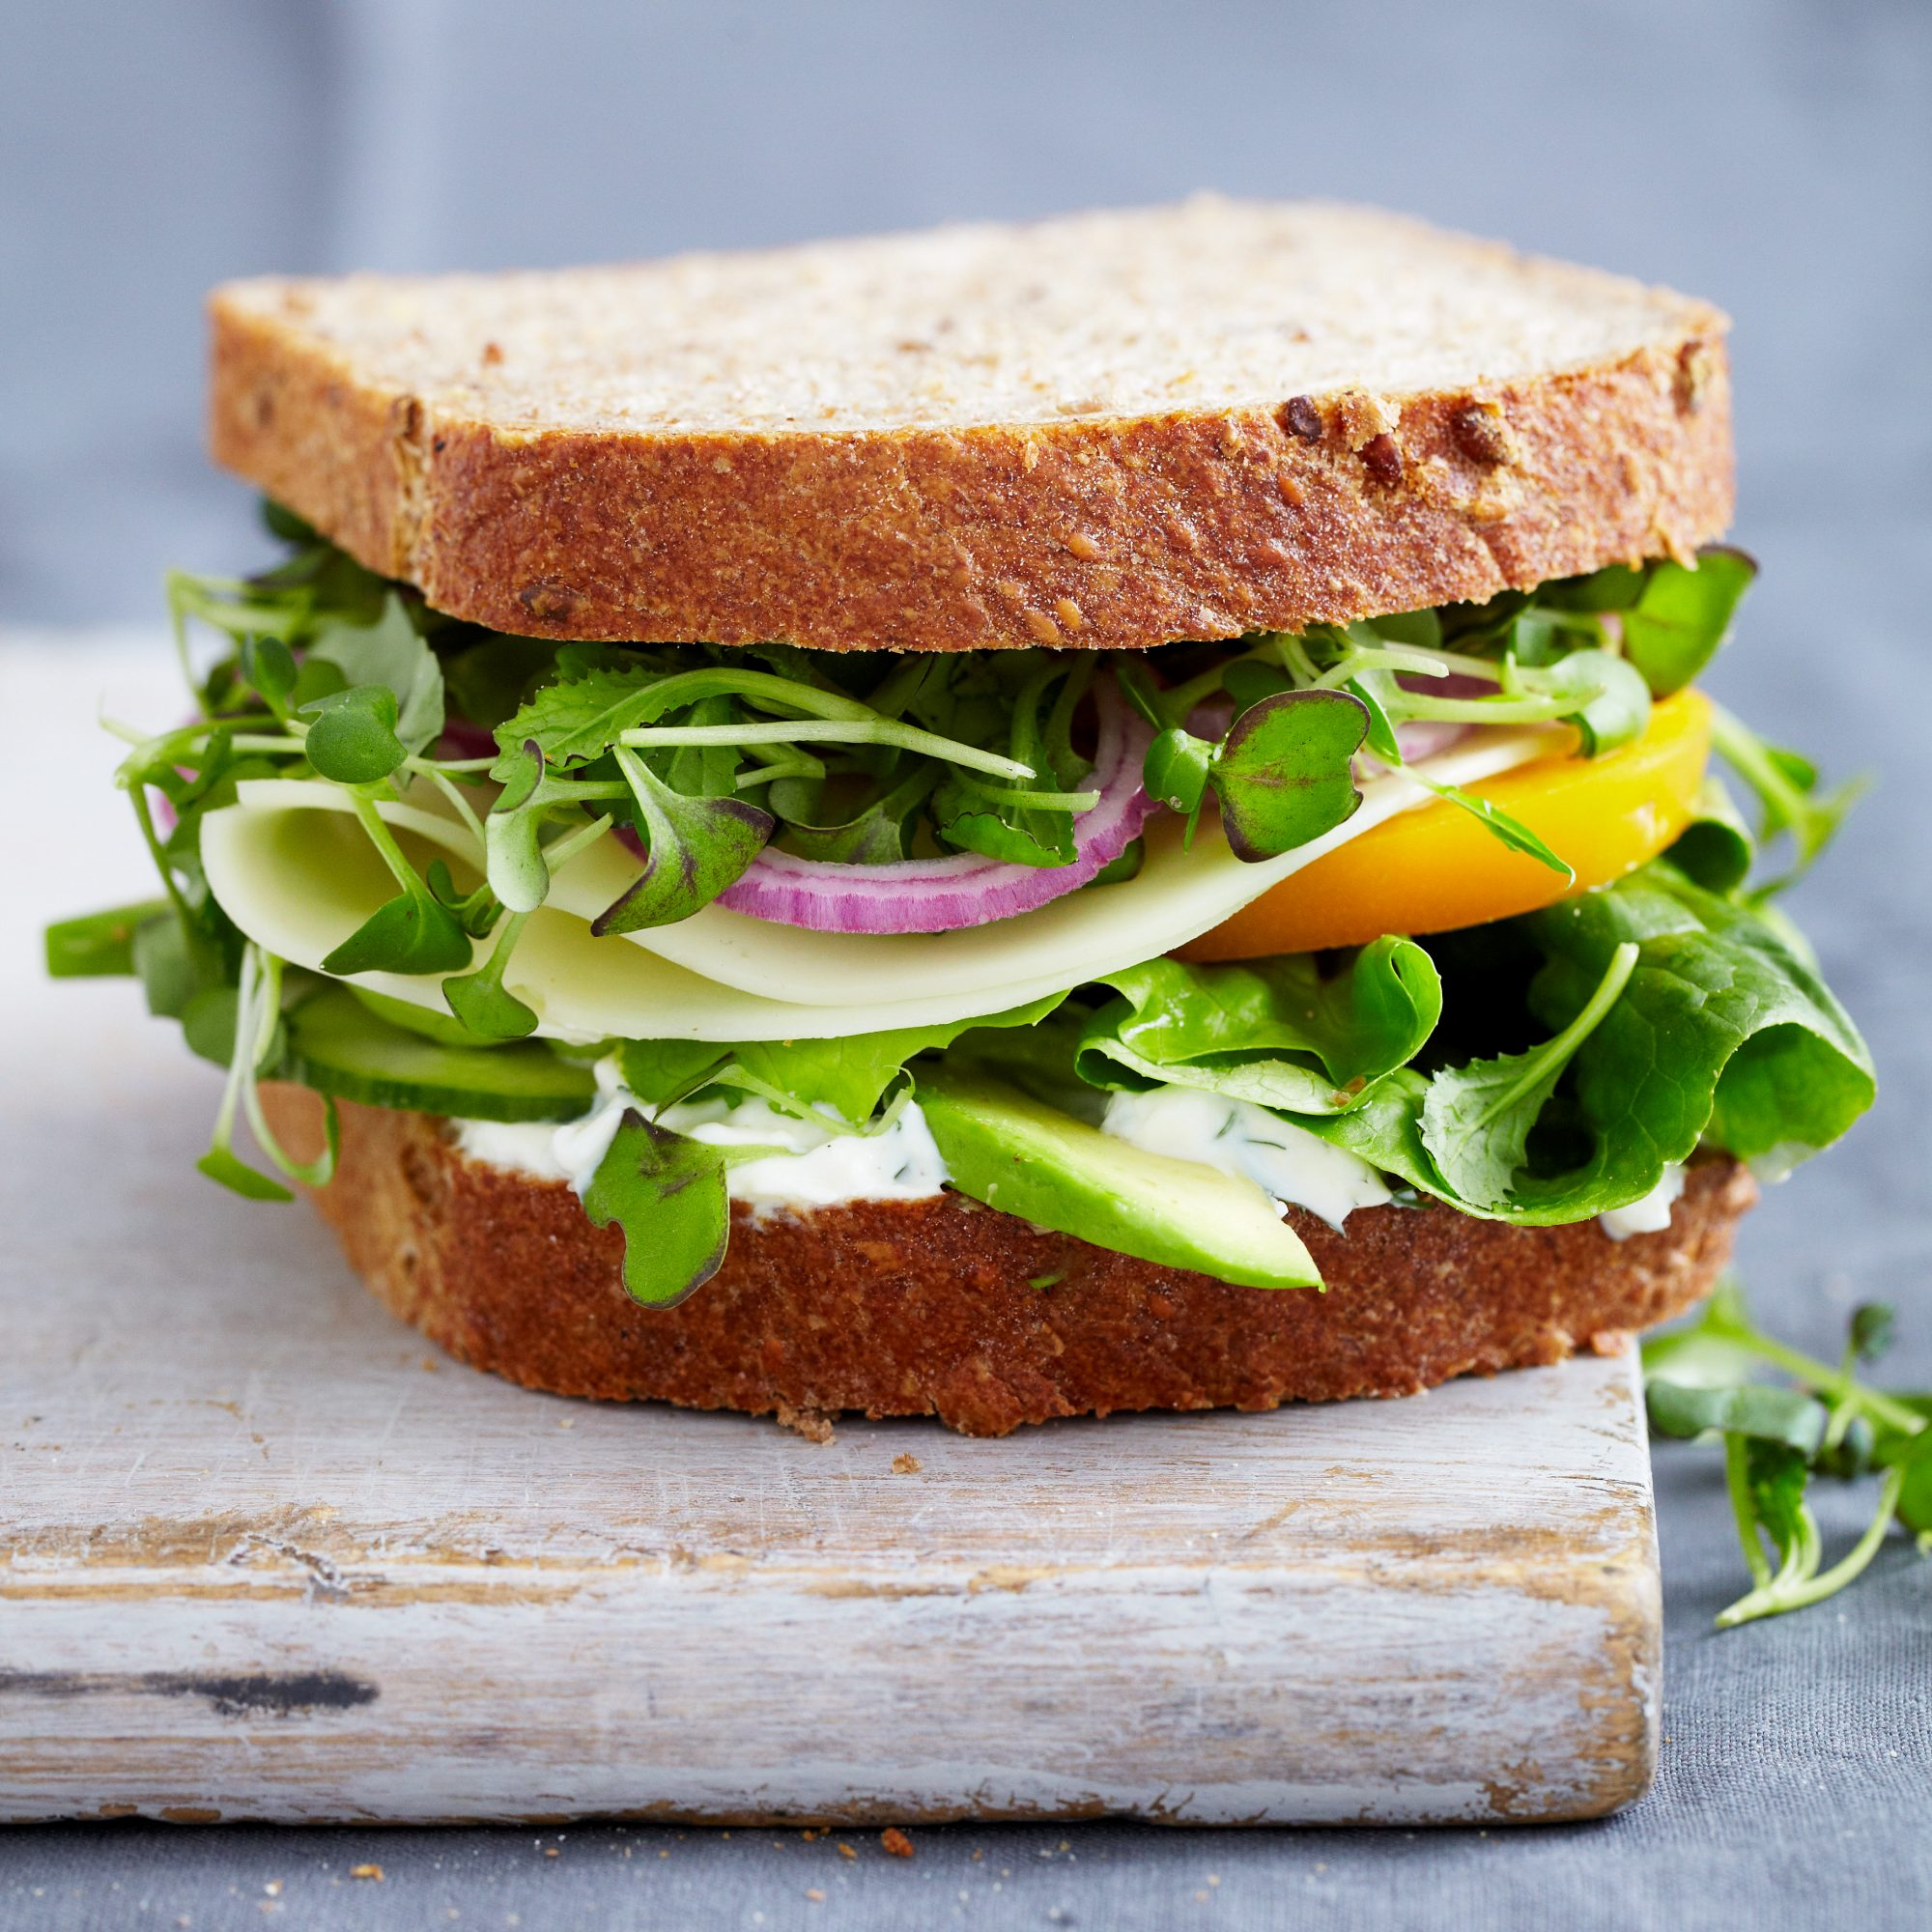 Vegetable Sandwich with Dill Sauce